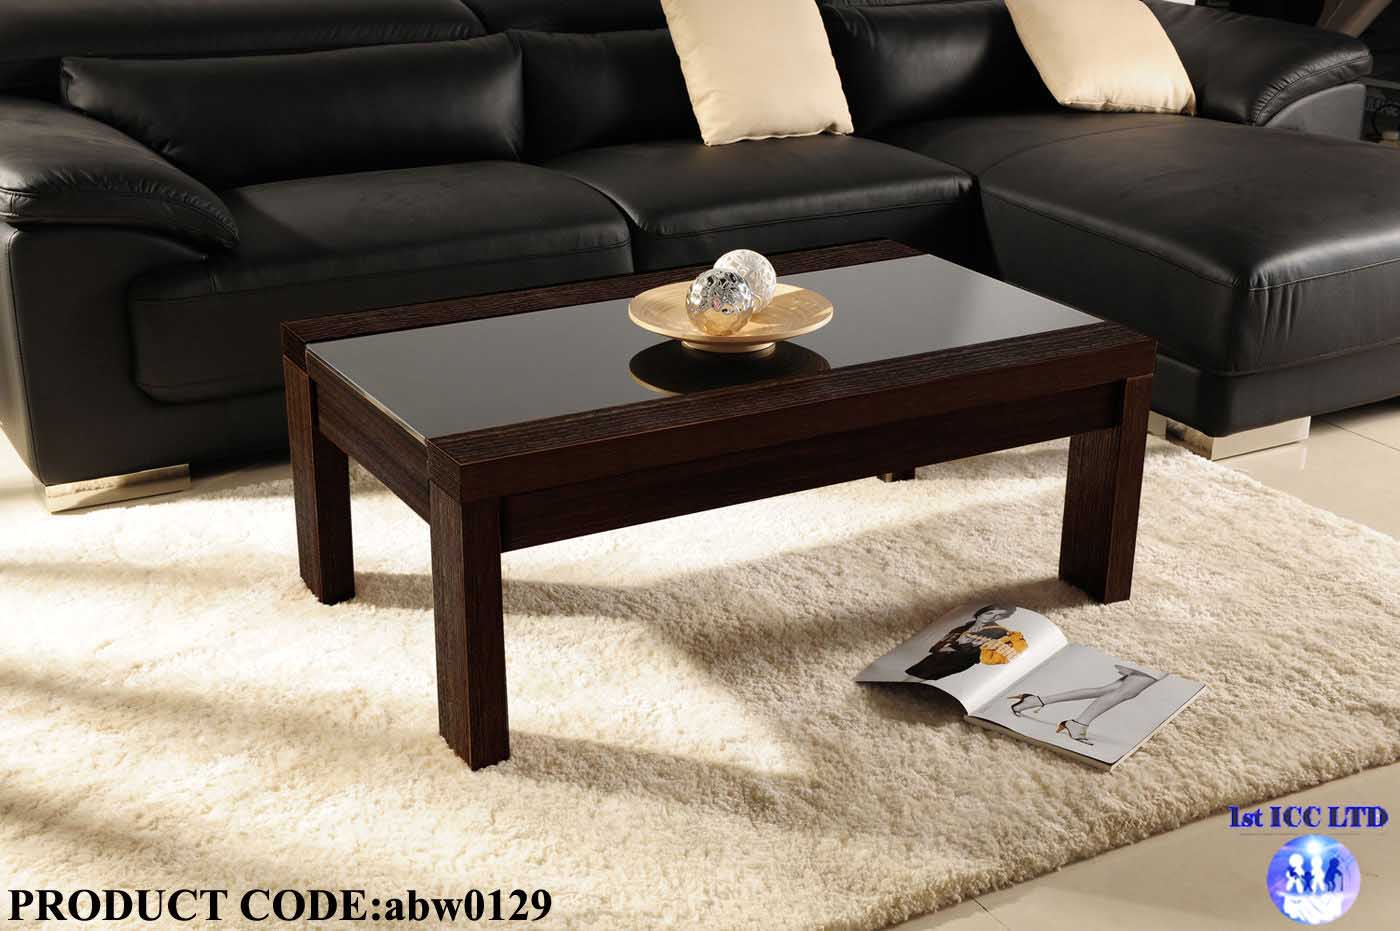 coffee tables ideas contemporary household table dark brown white tiles coloured suitable for living room cozy comfortable sofas fur leather what color end with couch glass shelf